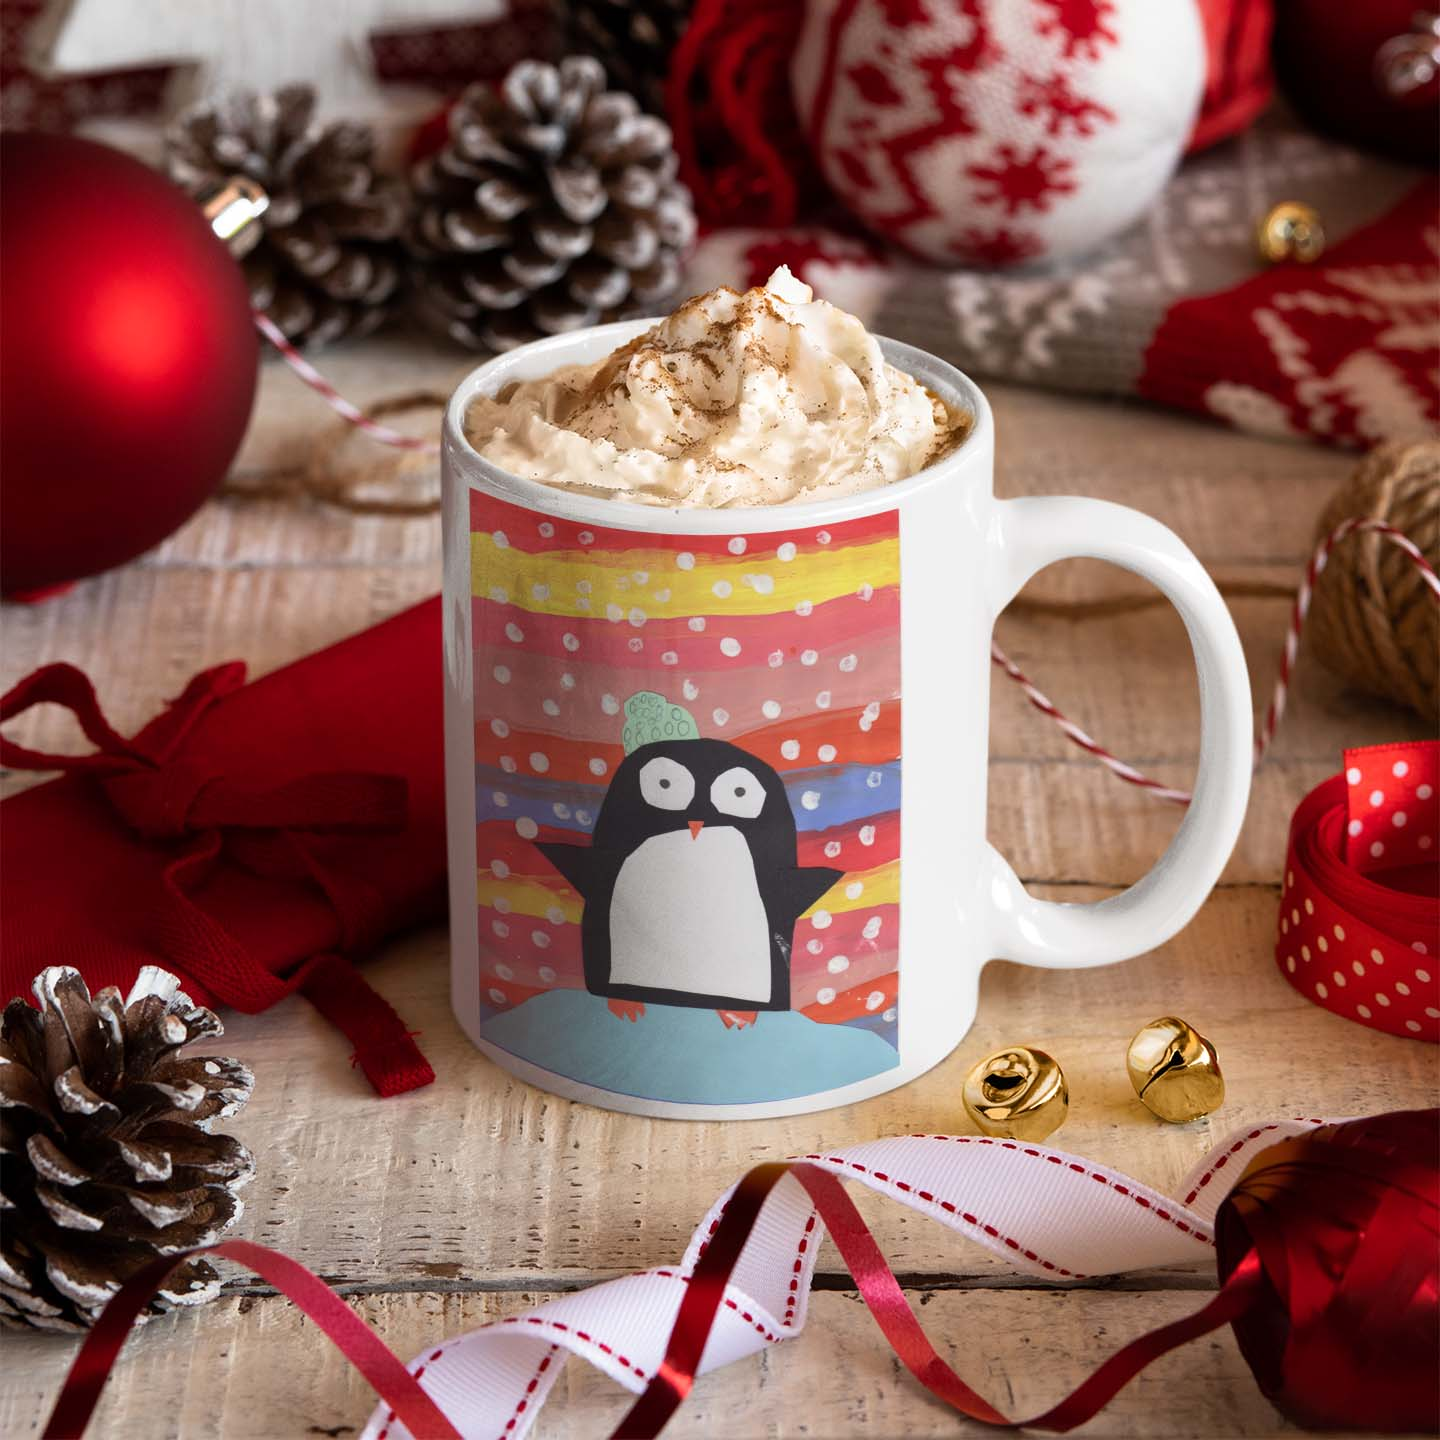 mockup-of-an-11-oz-coffee-mug-surrounded-by-xmas-decorations-30649